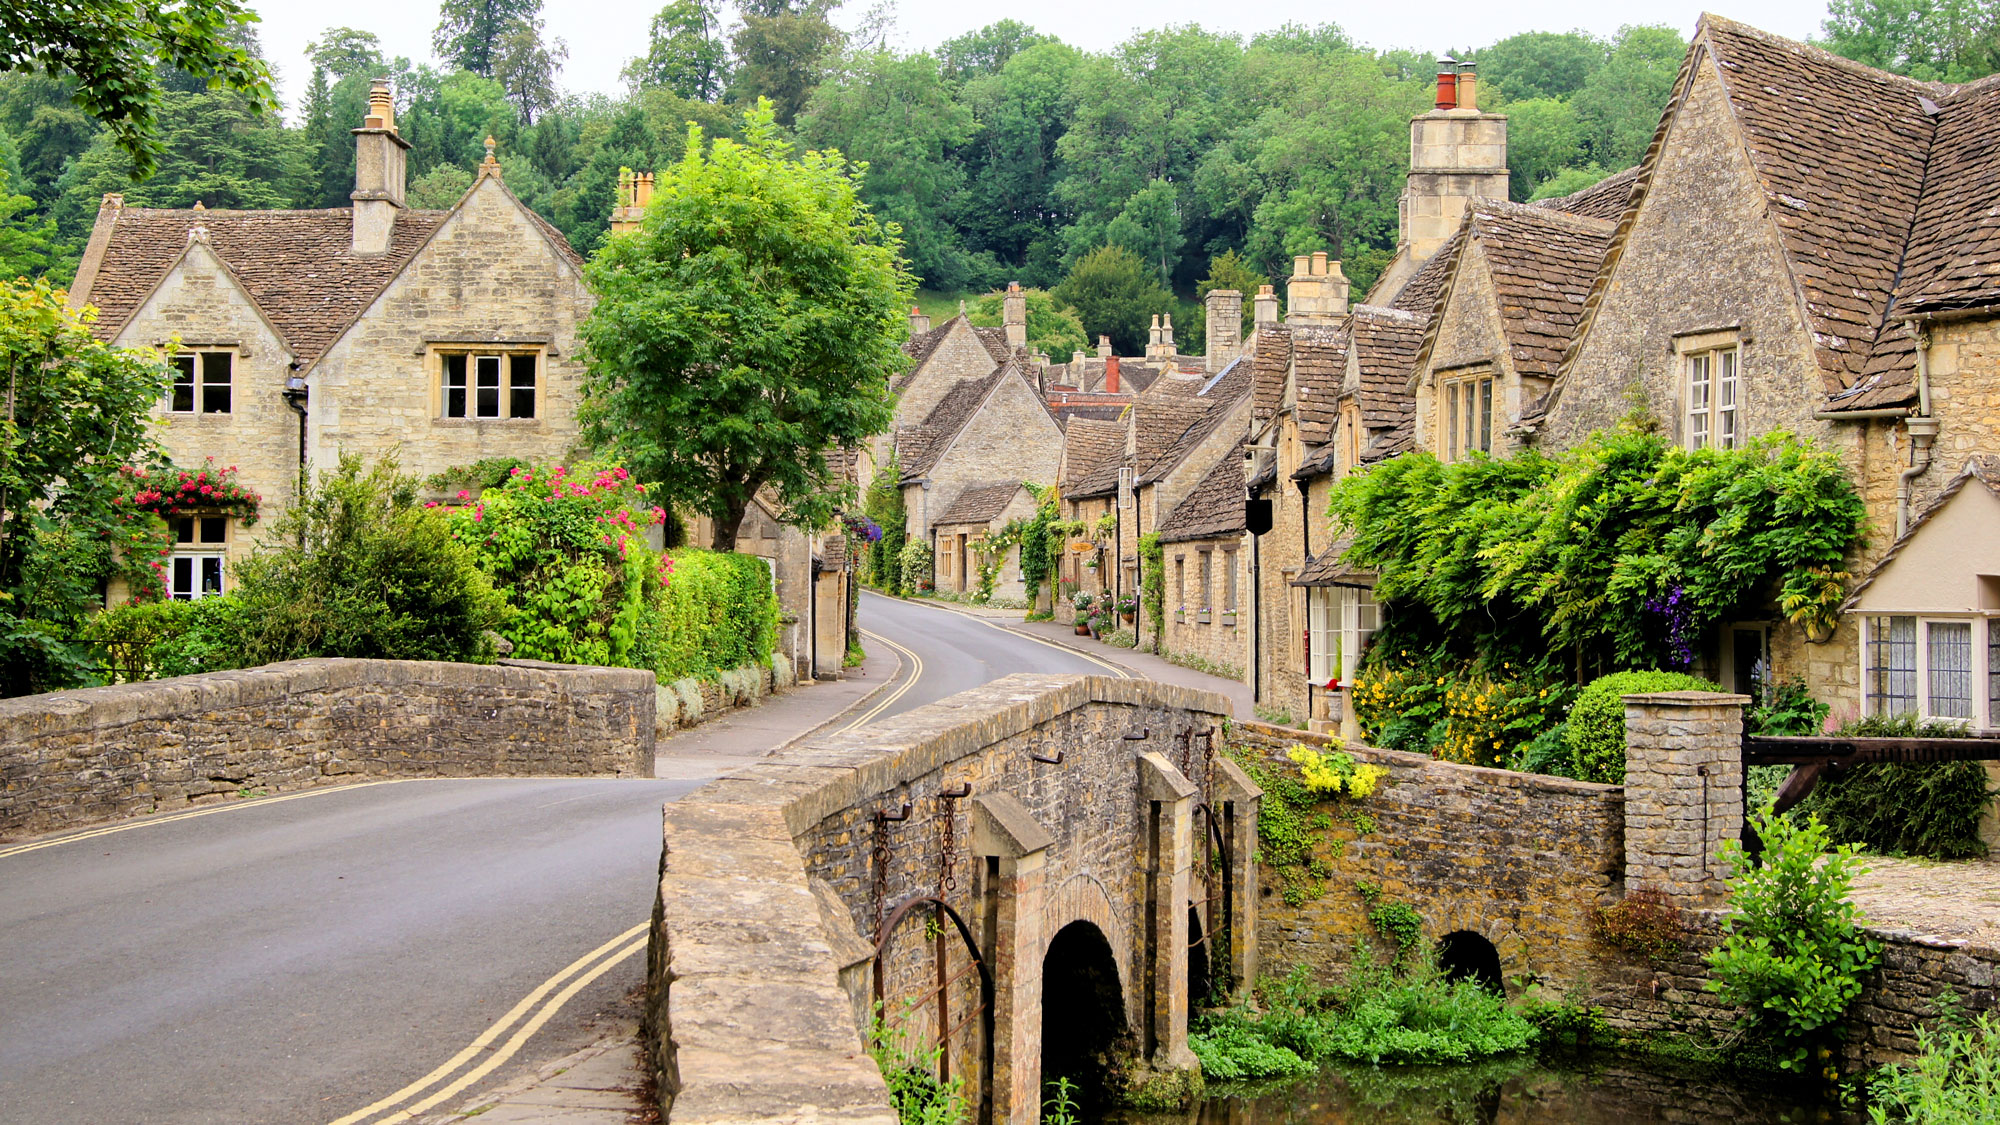 Beside the horses, you can enjoy the rich beauty of the Cotswolds